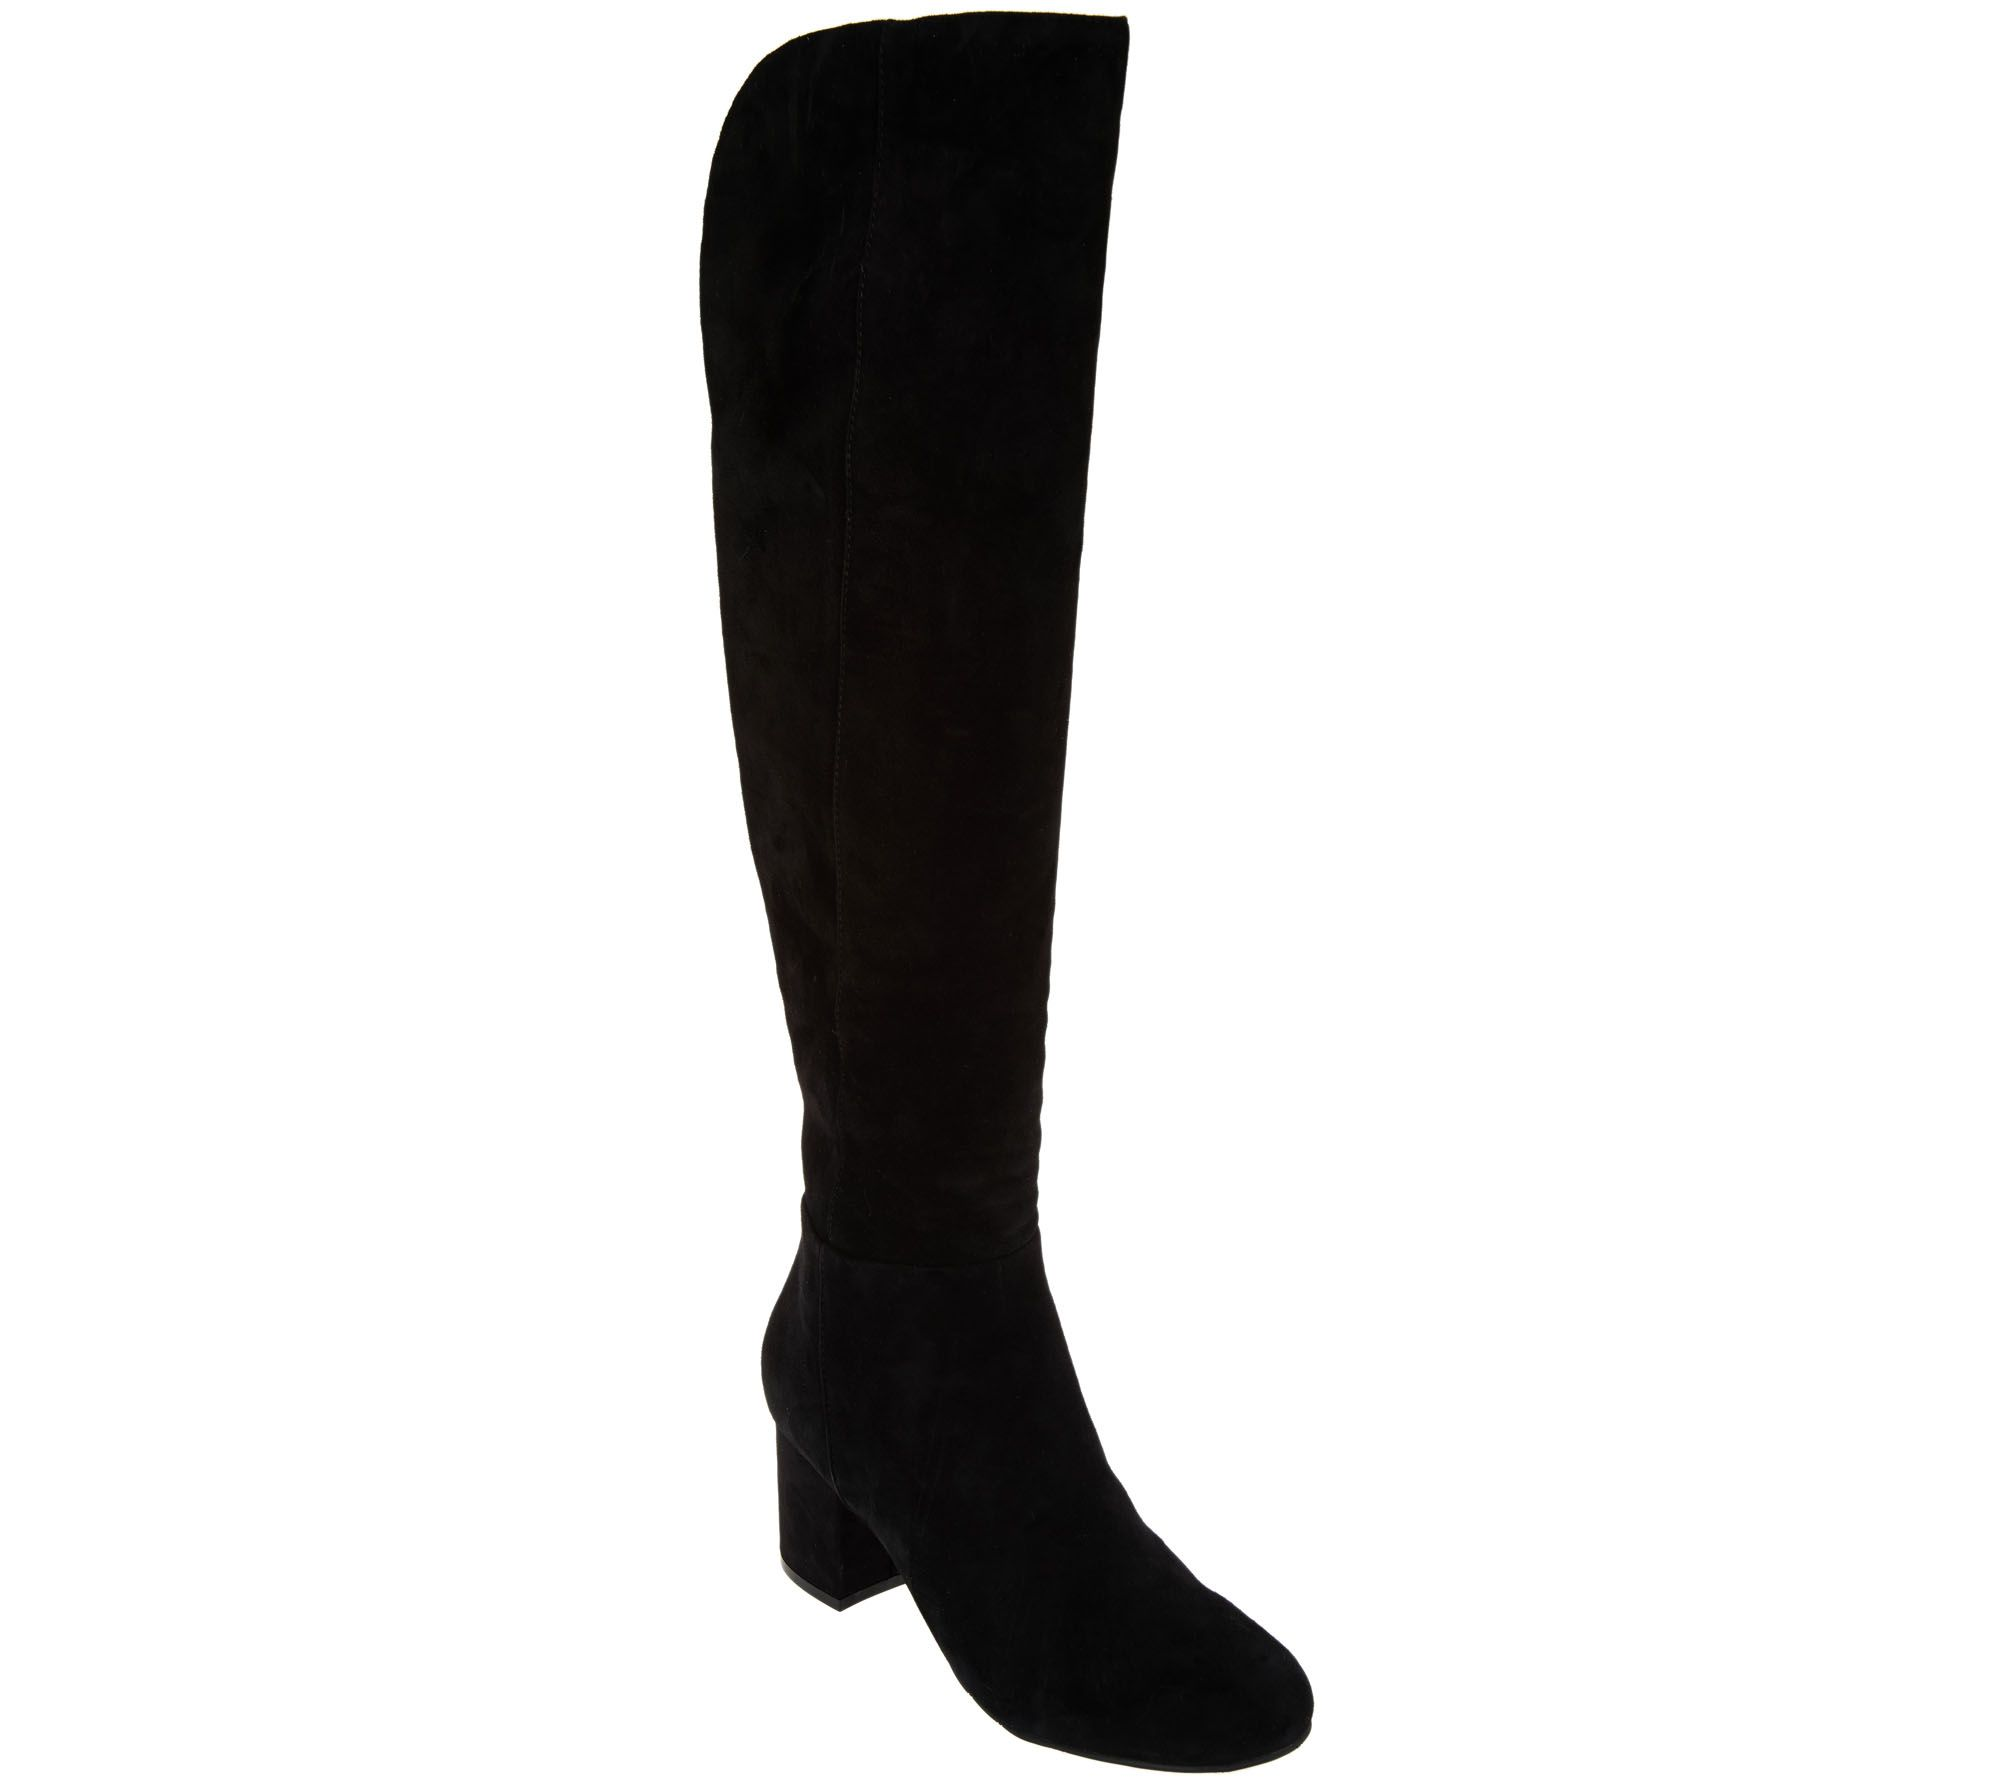 Women s boots on sale or clearance - Suede Over The Knee Boots With Block Heel A282566